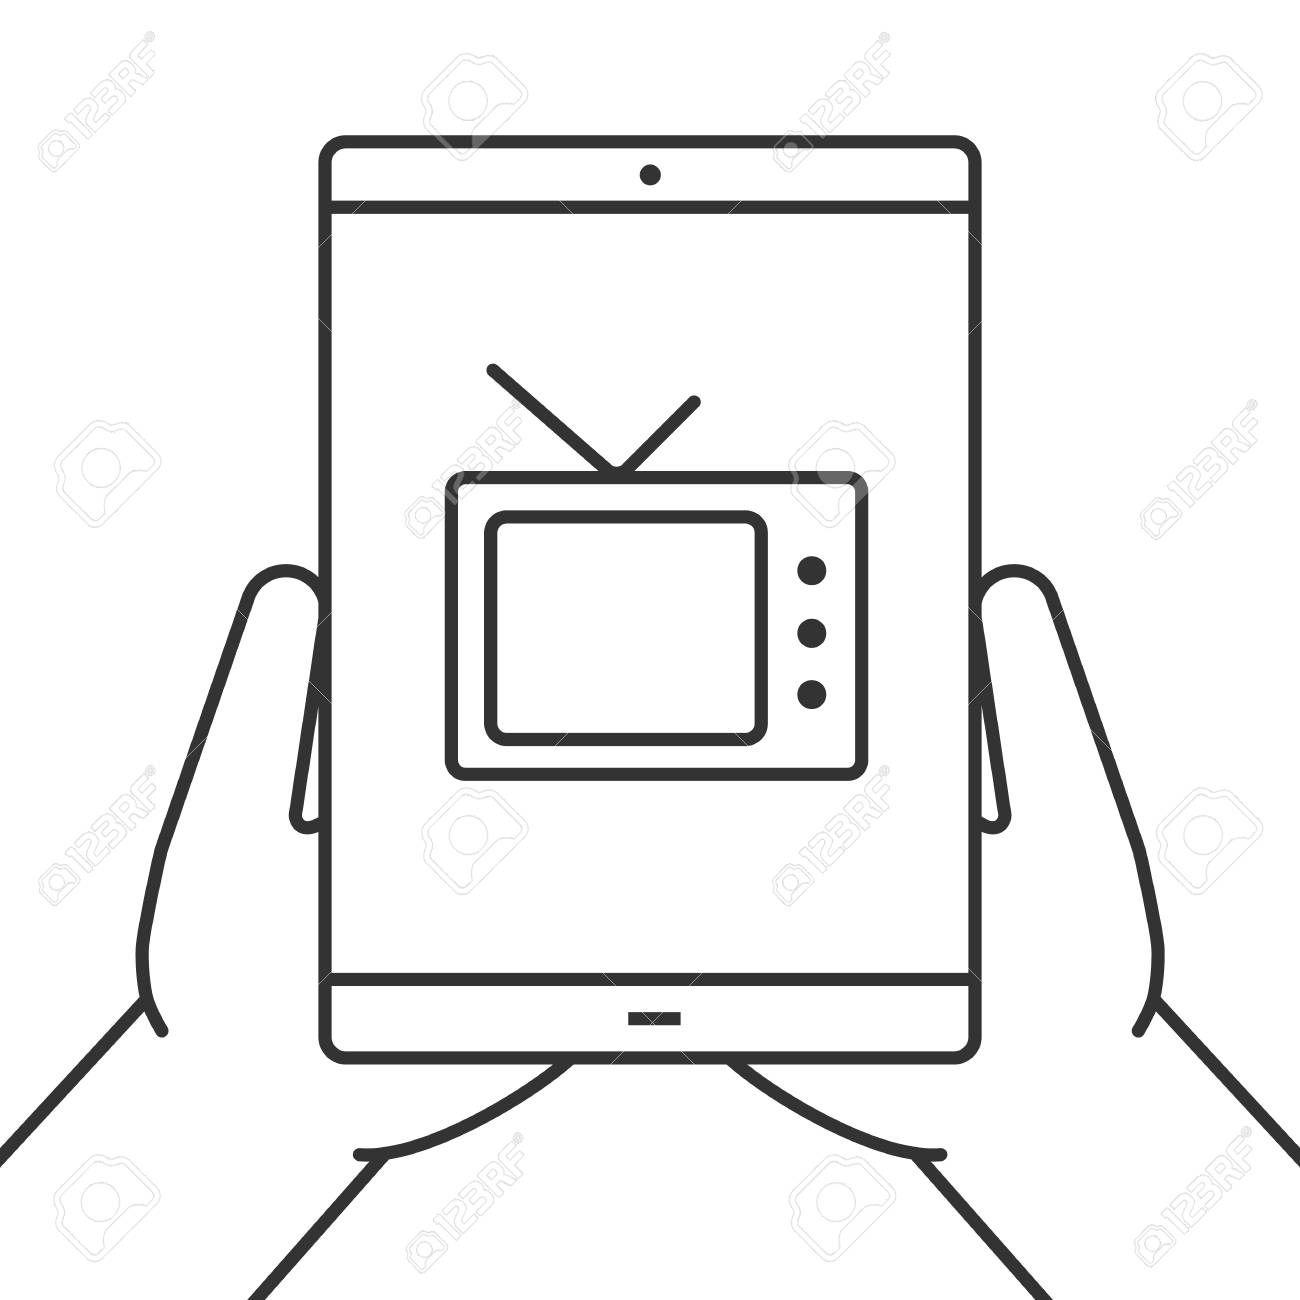 Hands Holding Tablet Computer Linear Icon Watching Tv Online